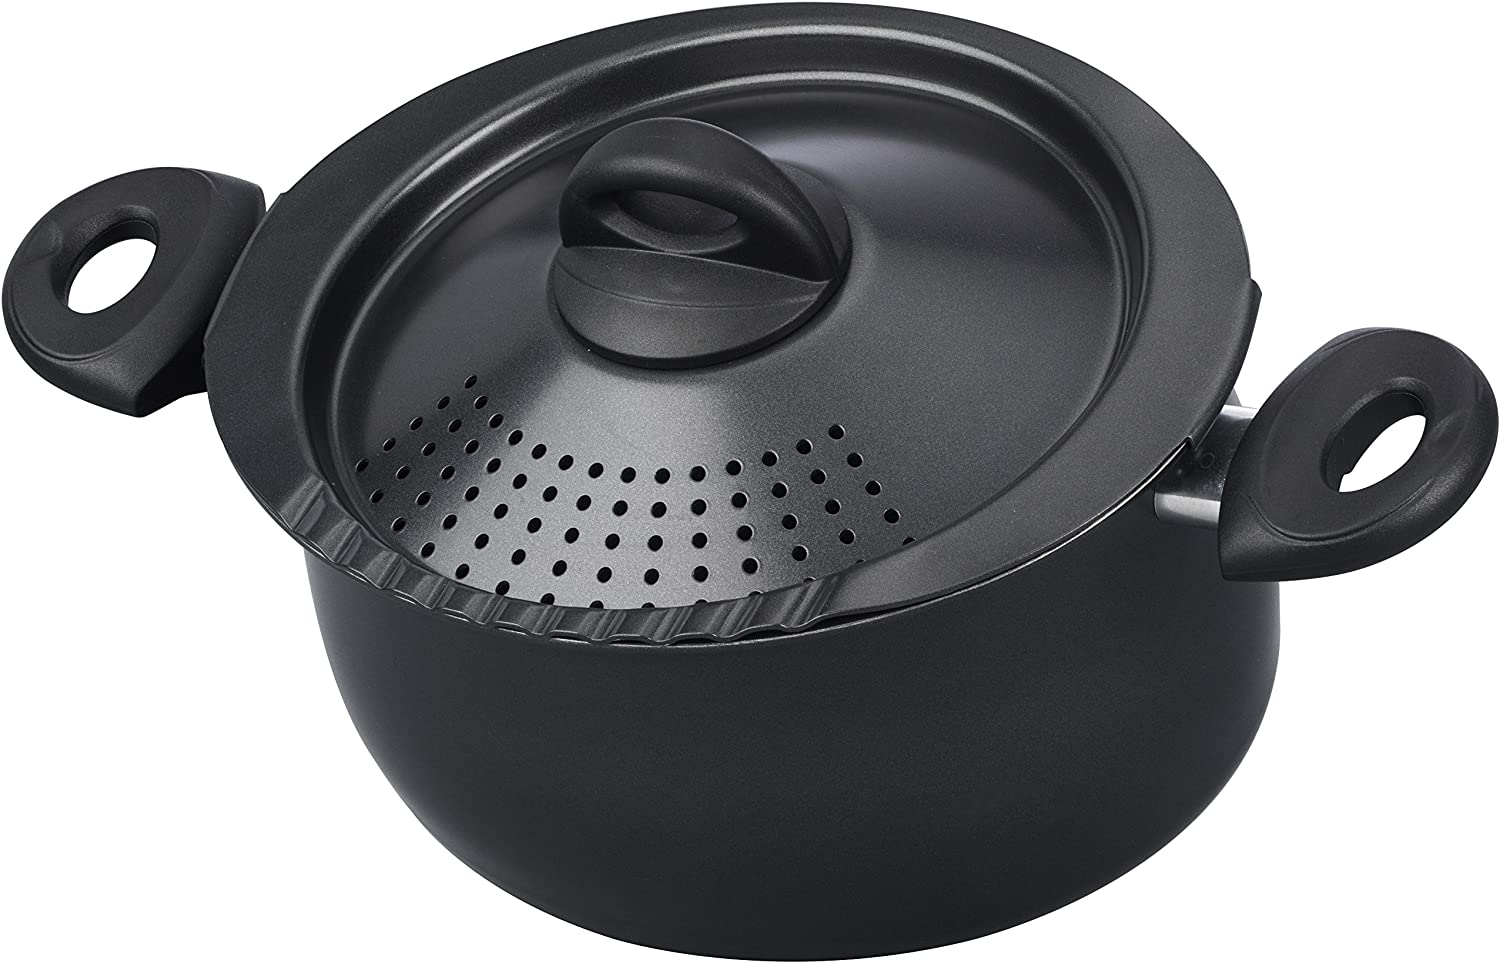 Bialetti Oval 5 Quart Pasta Pot with Strainer Lid, Nonstick, 1, Black